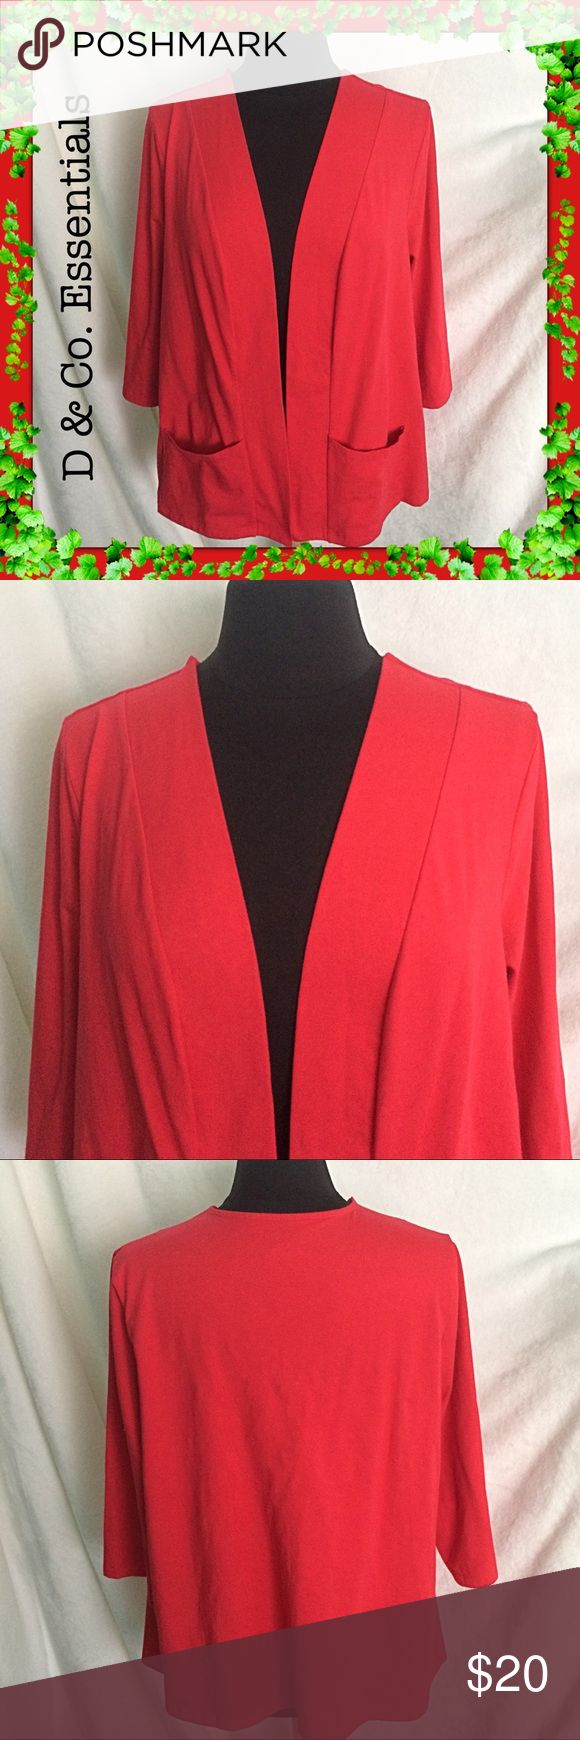 """D & Co. Essentials / Coral Jacket / Size XL D & Co. Essentials / Coral Jacket / Size XL /  Approx Measurements:  Bust: 50"""" Length: 26"""" 95% cotton 5% spandex Two Pockets / Fits Comfortably!  Please feel free to make an offer - Enjoy BIG discounts on bundles & save $$$ on shipping! I package safely & ship fast.  TY & Happy Poshing! 💜💜💜  D7 D & Co. Jackets & Coats"""